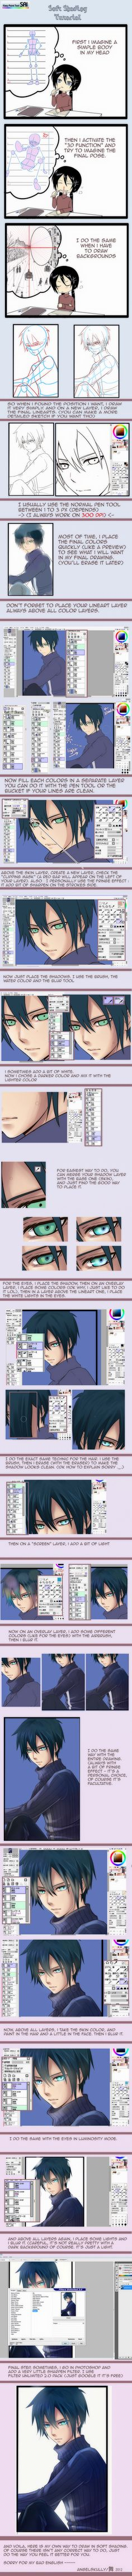 Soft Shading tutorial (Sai) + by *angelskully